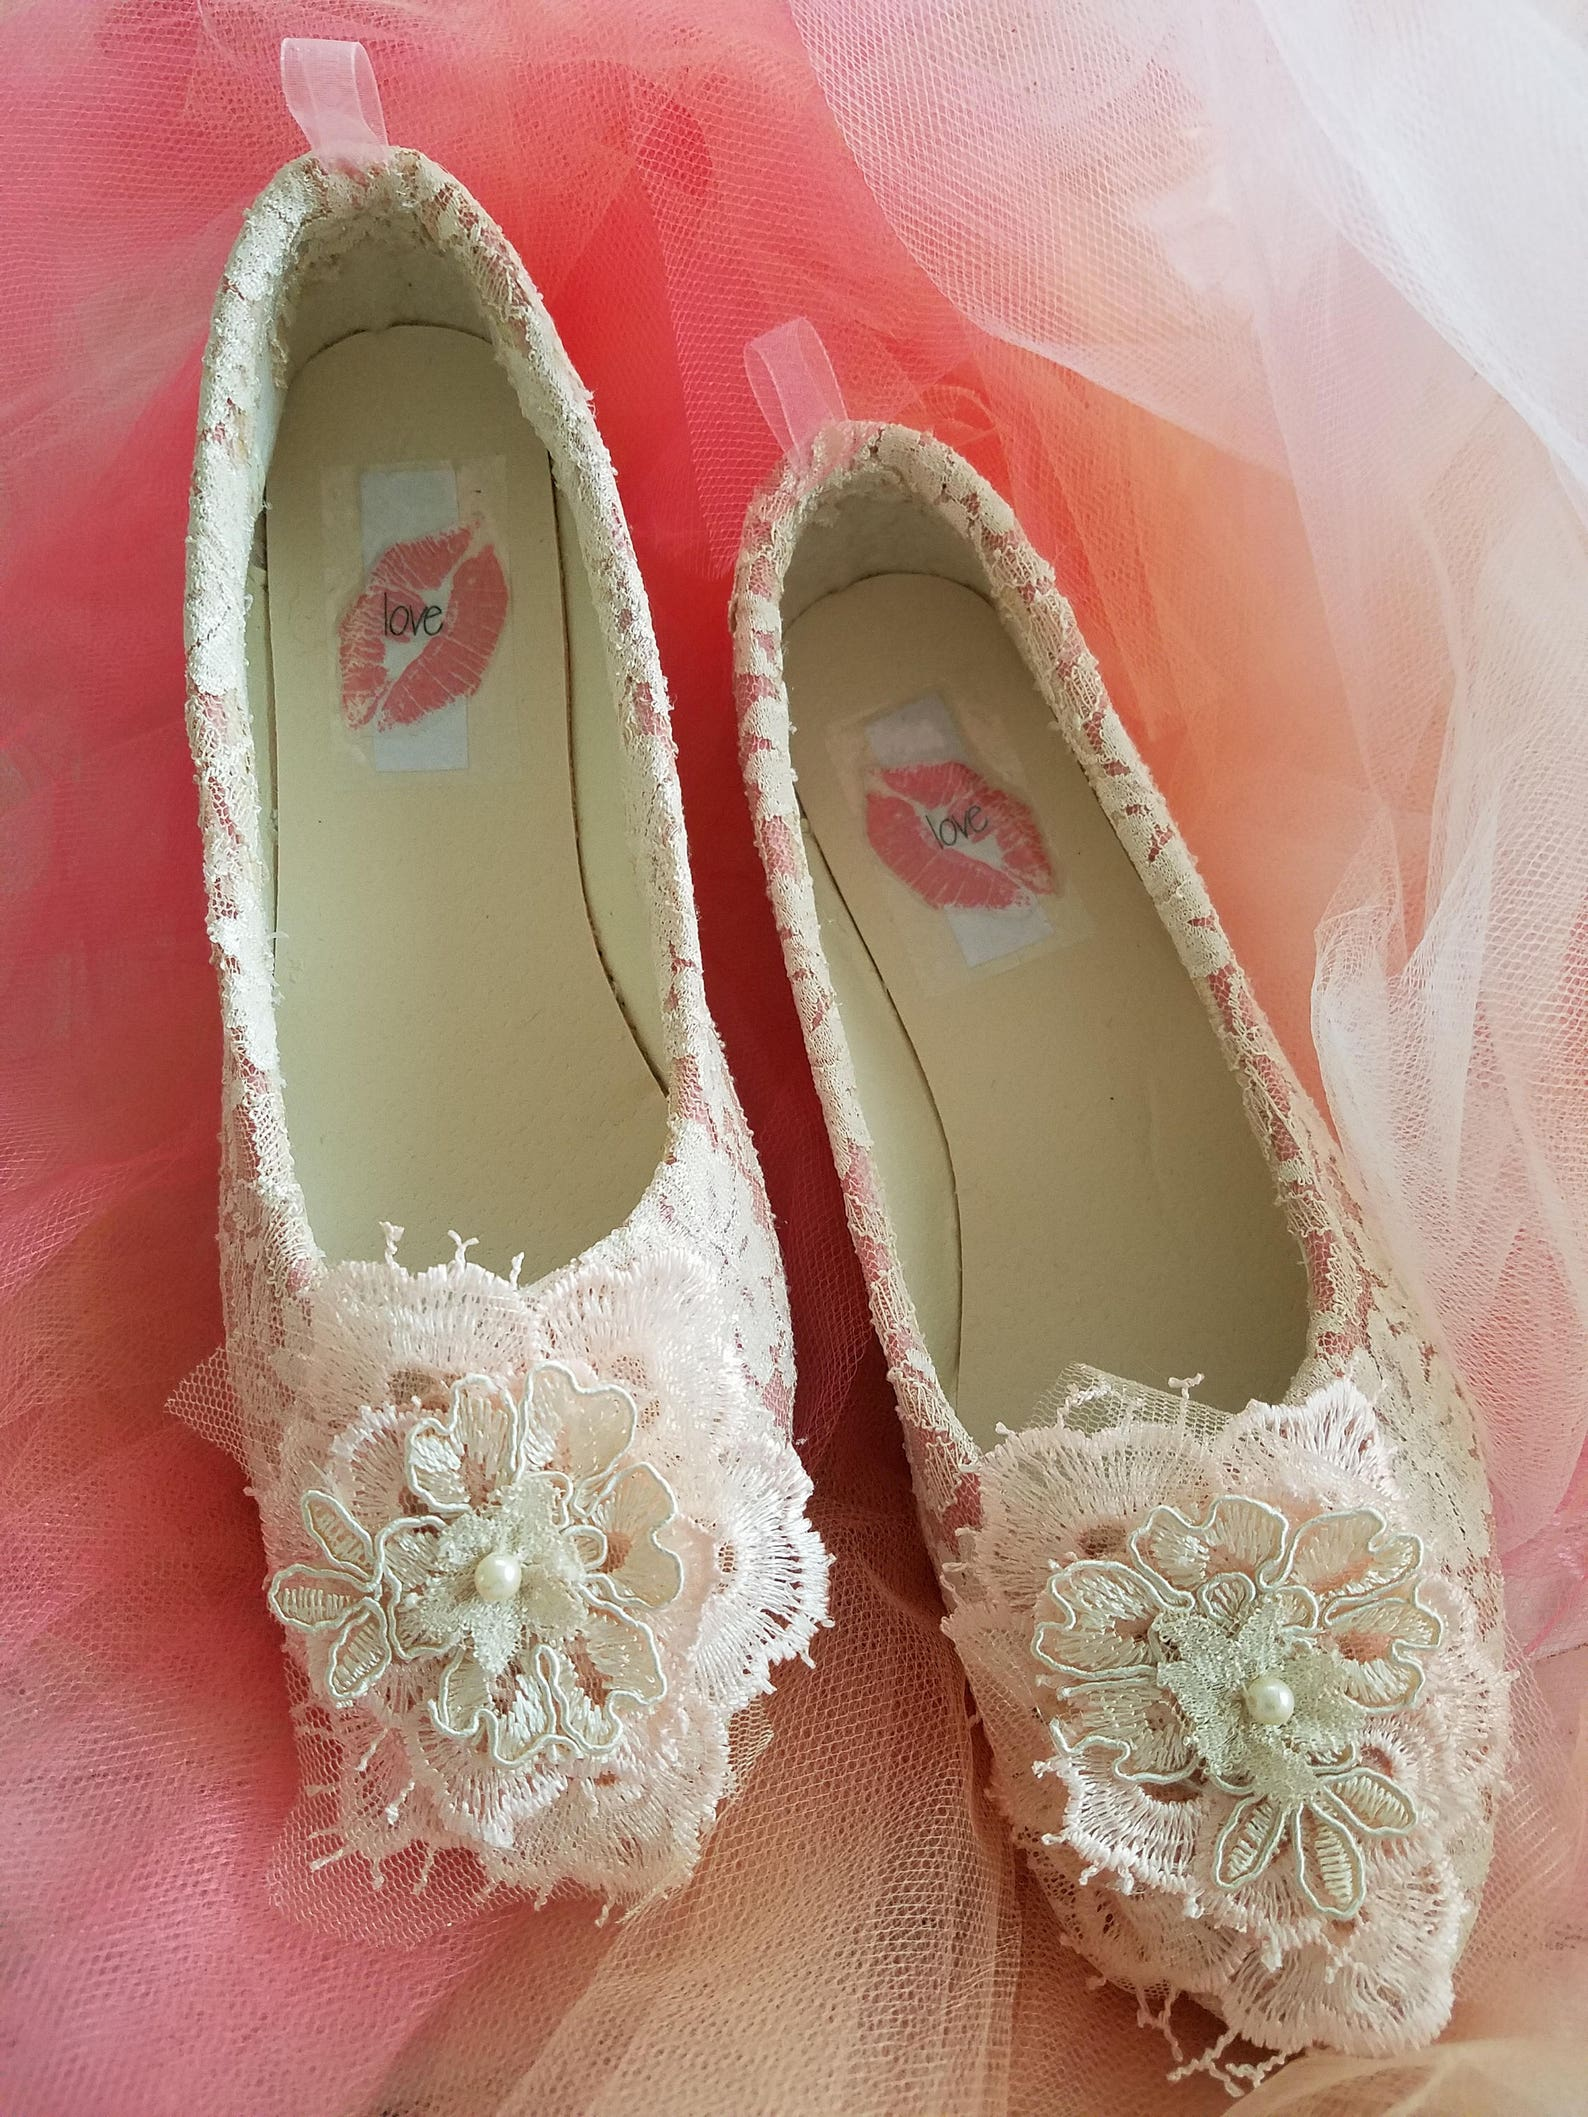 romantic custom designed 3d lace and removable satin ankle-strap bridal wedding ballet flats shoes party club quinceanera prom